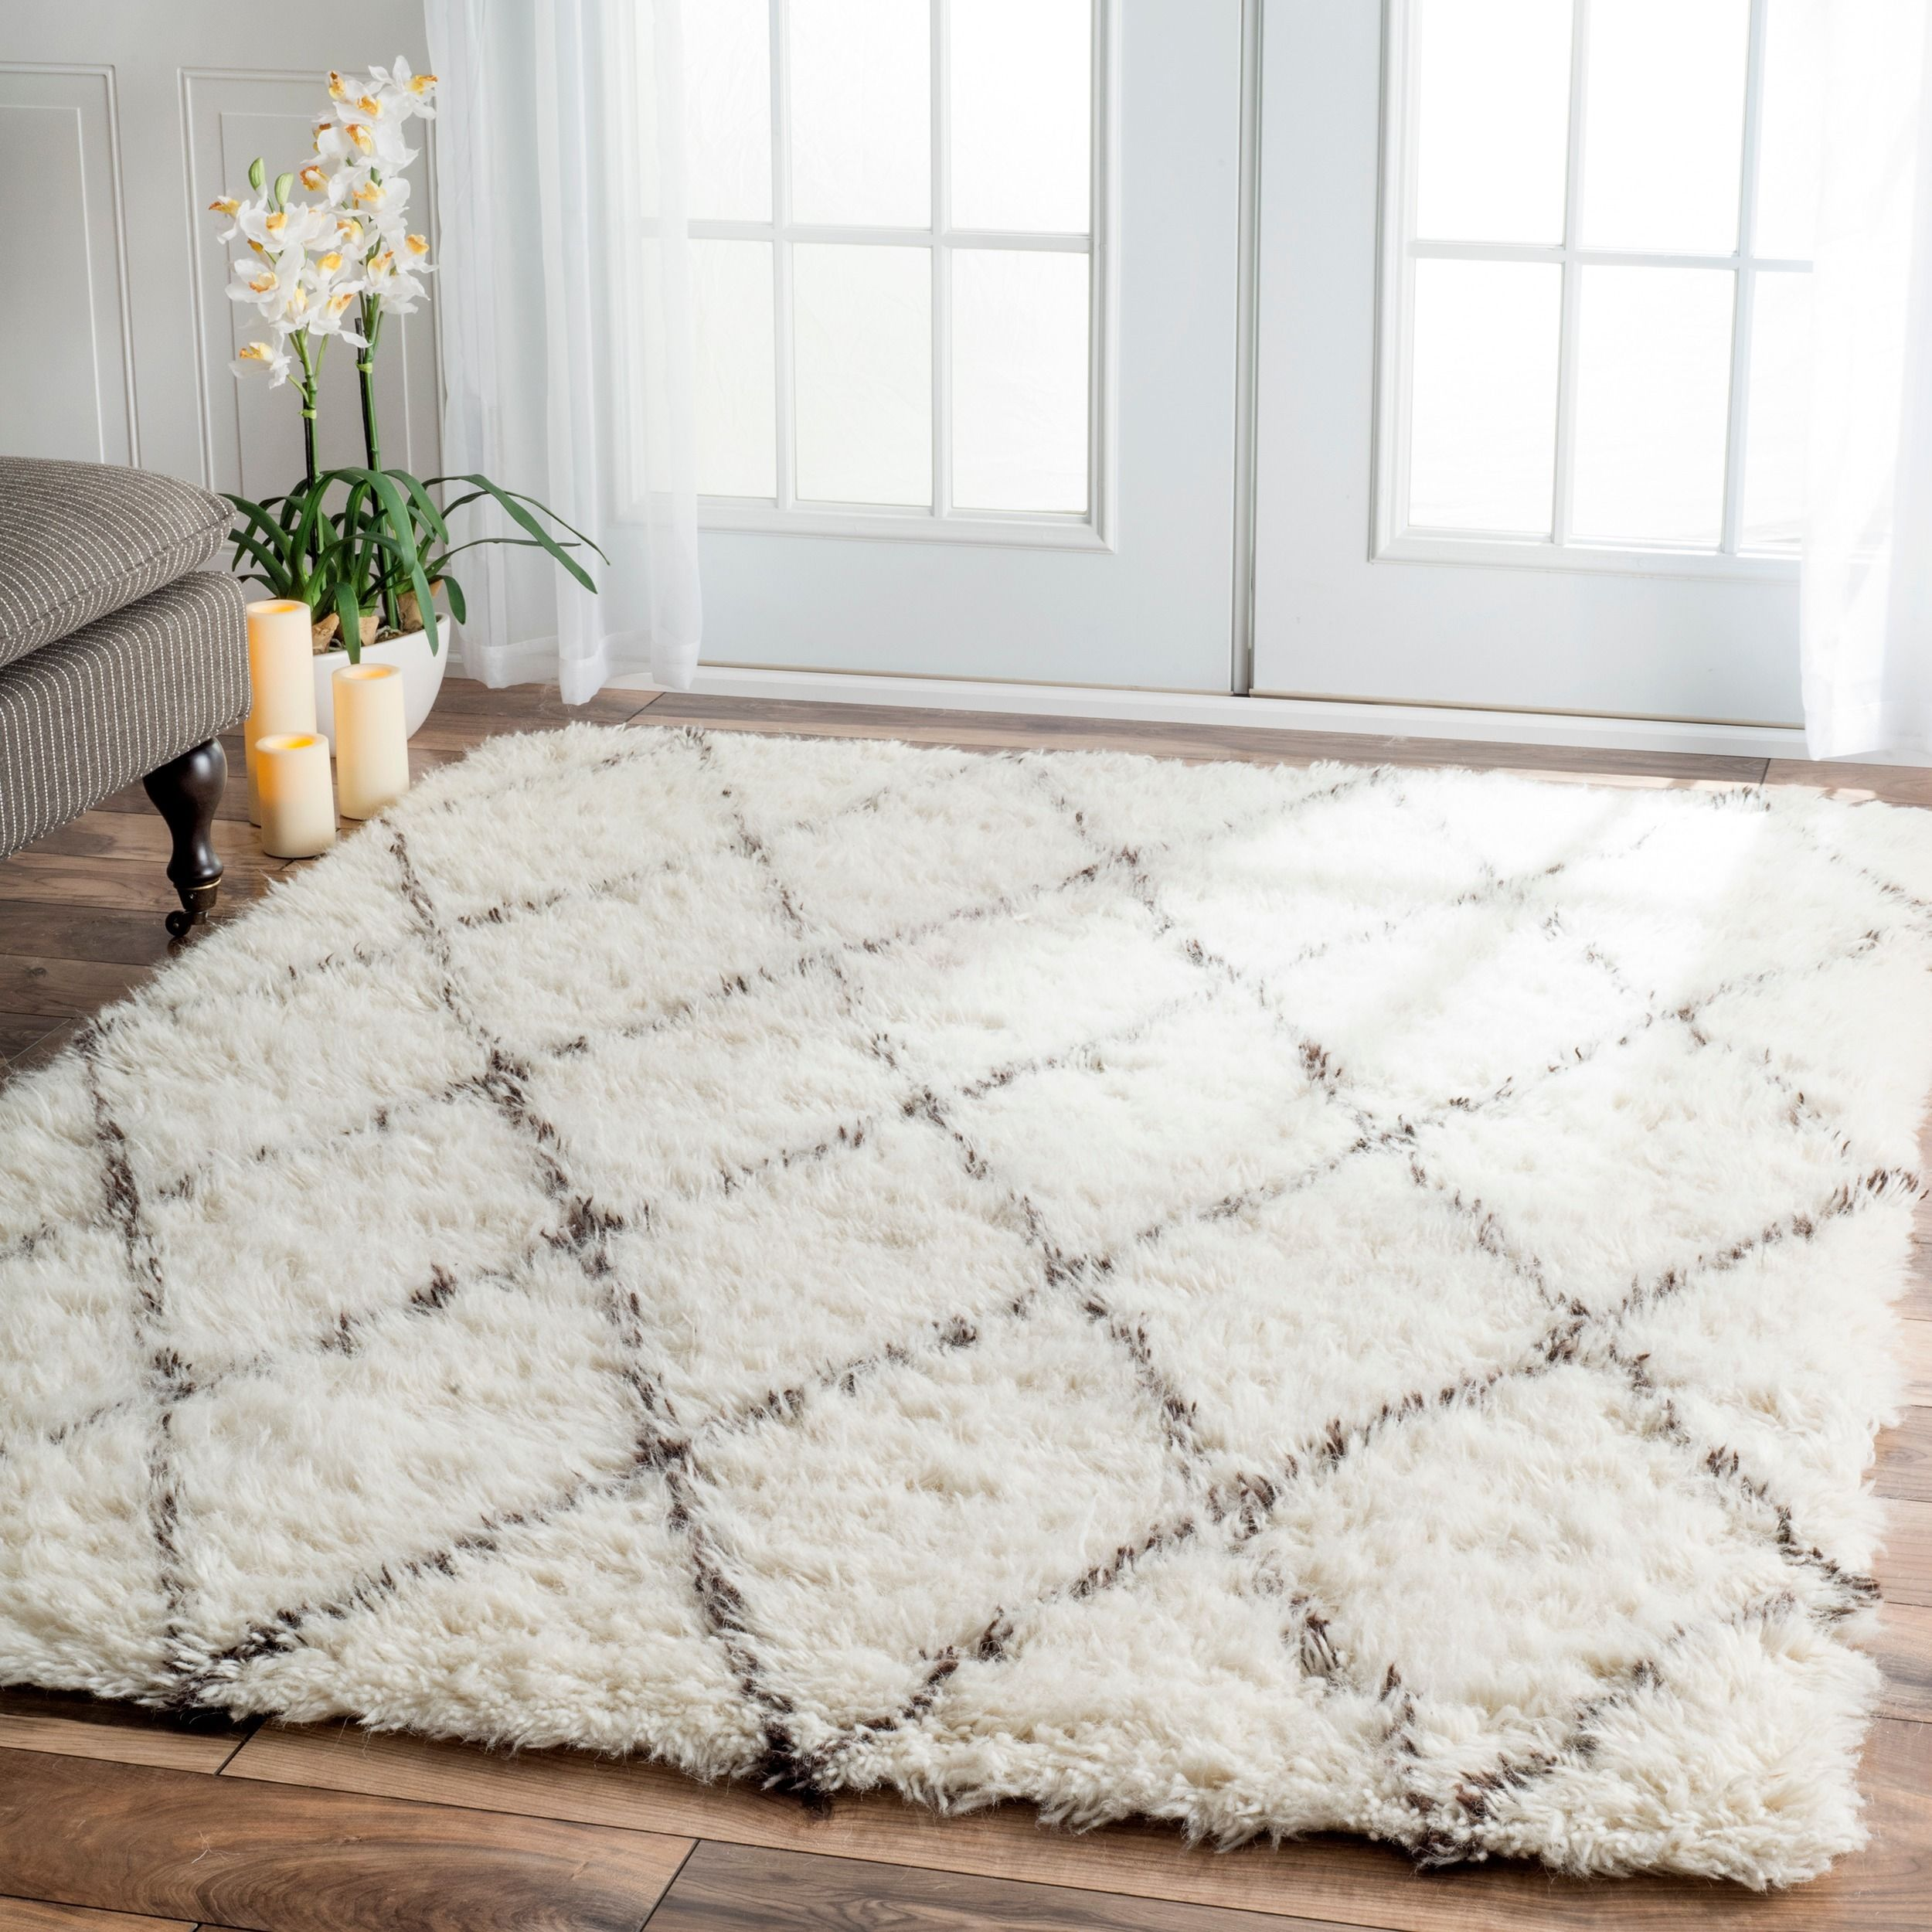 Lovely NuLOOM Handmade Plush Moroccan Trellis Wool Shag Rug X (Ivory), Black, Size  X Pictures